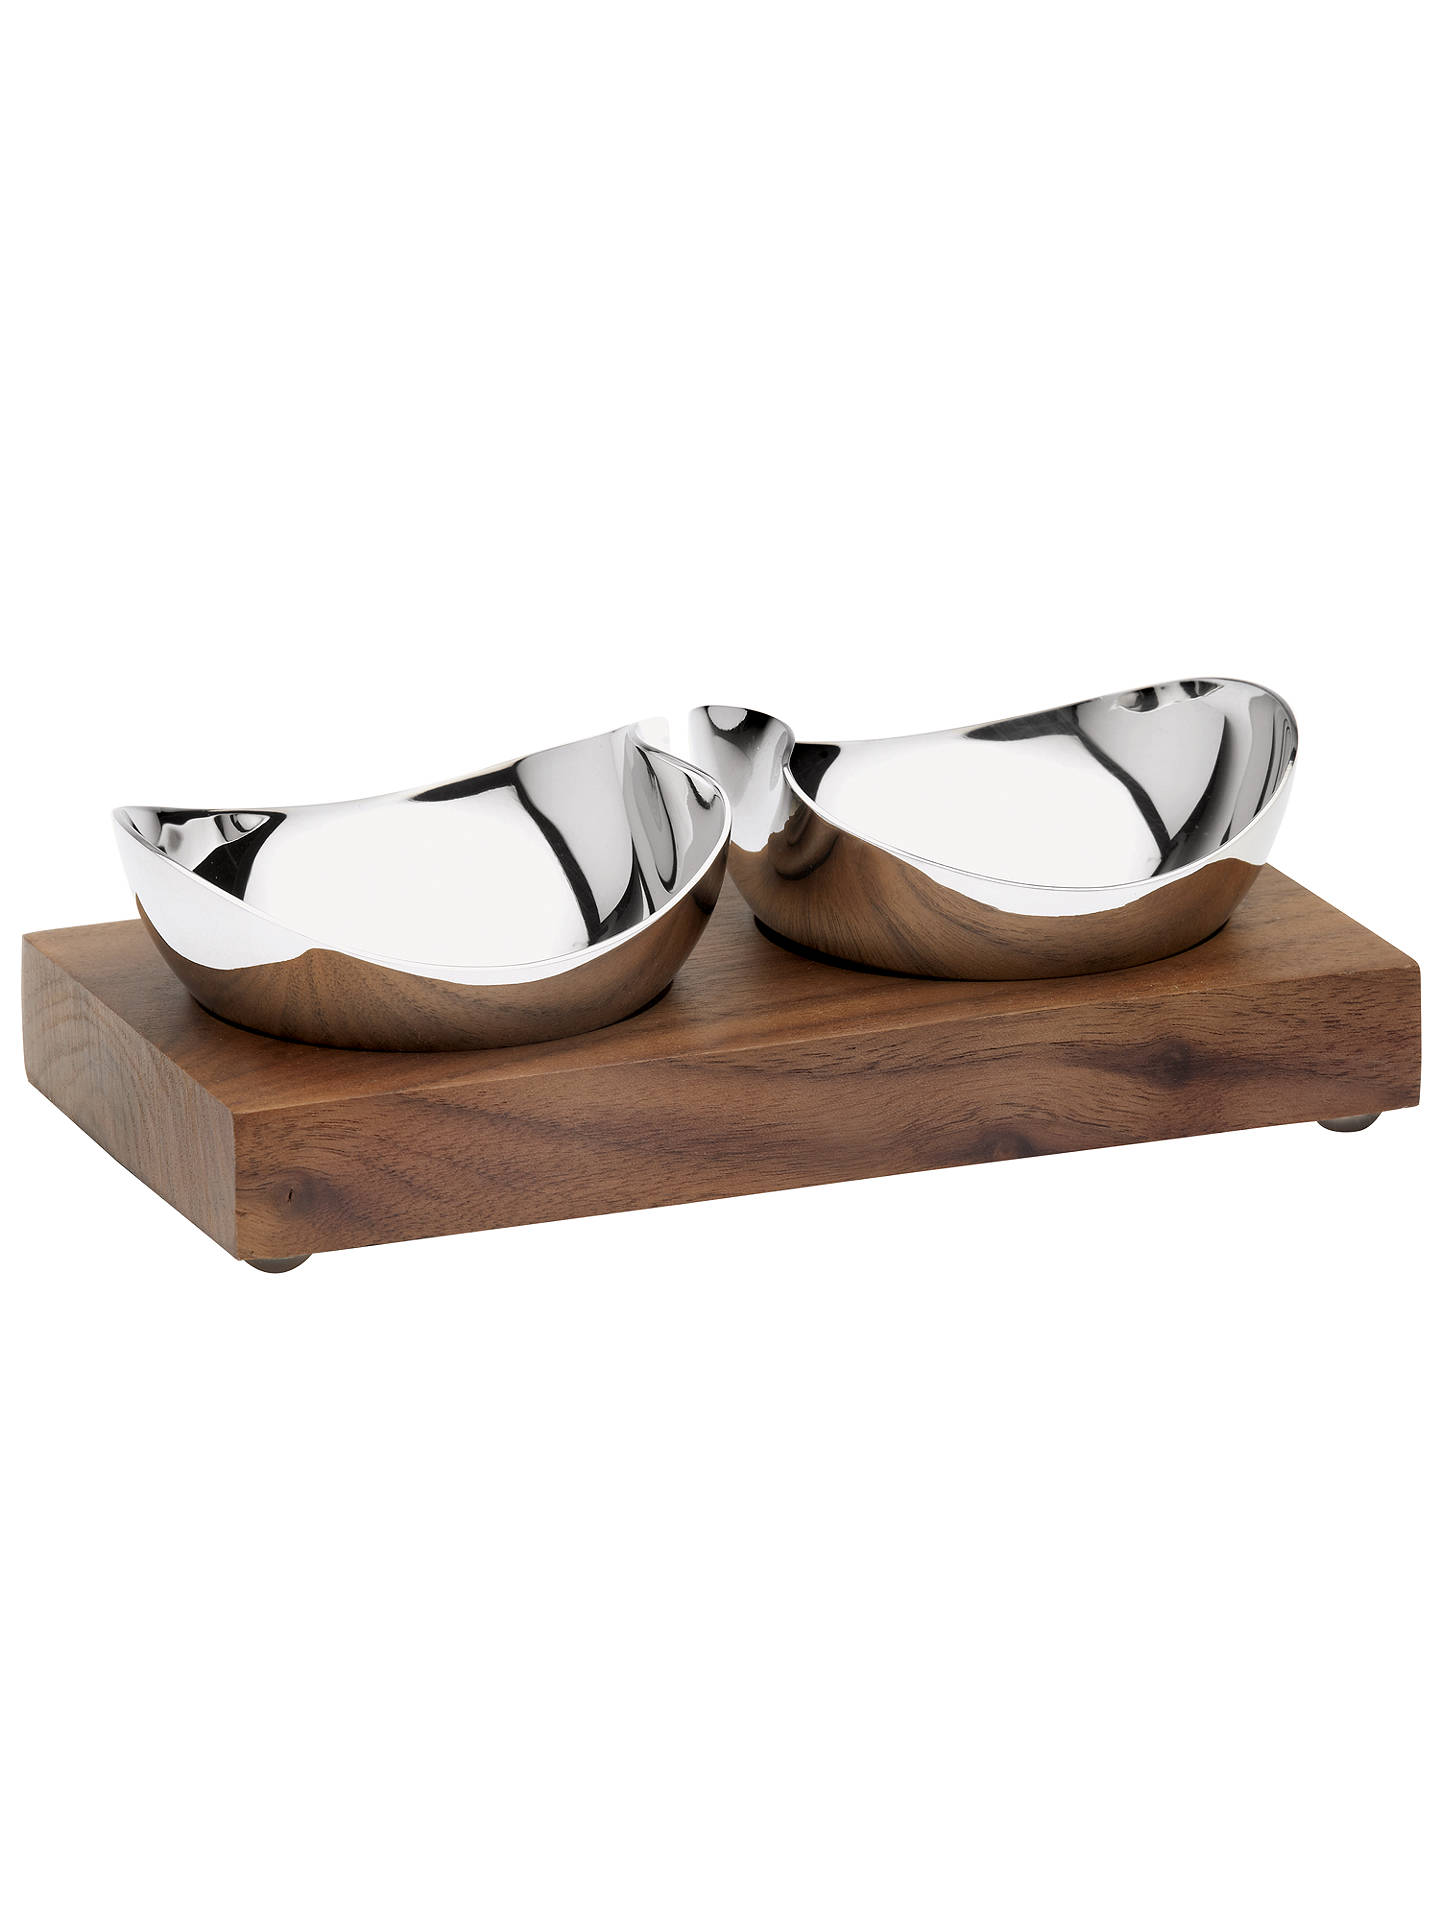 Buy Robert Welch Drift Pinch Pot Bowls with Walnut Stand, Set of 2 Online at johnlewis.com